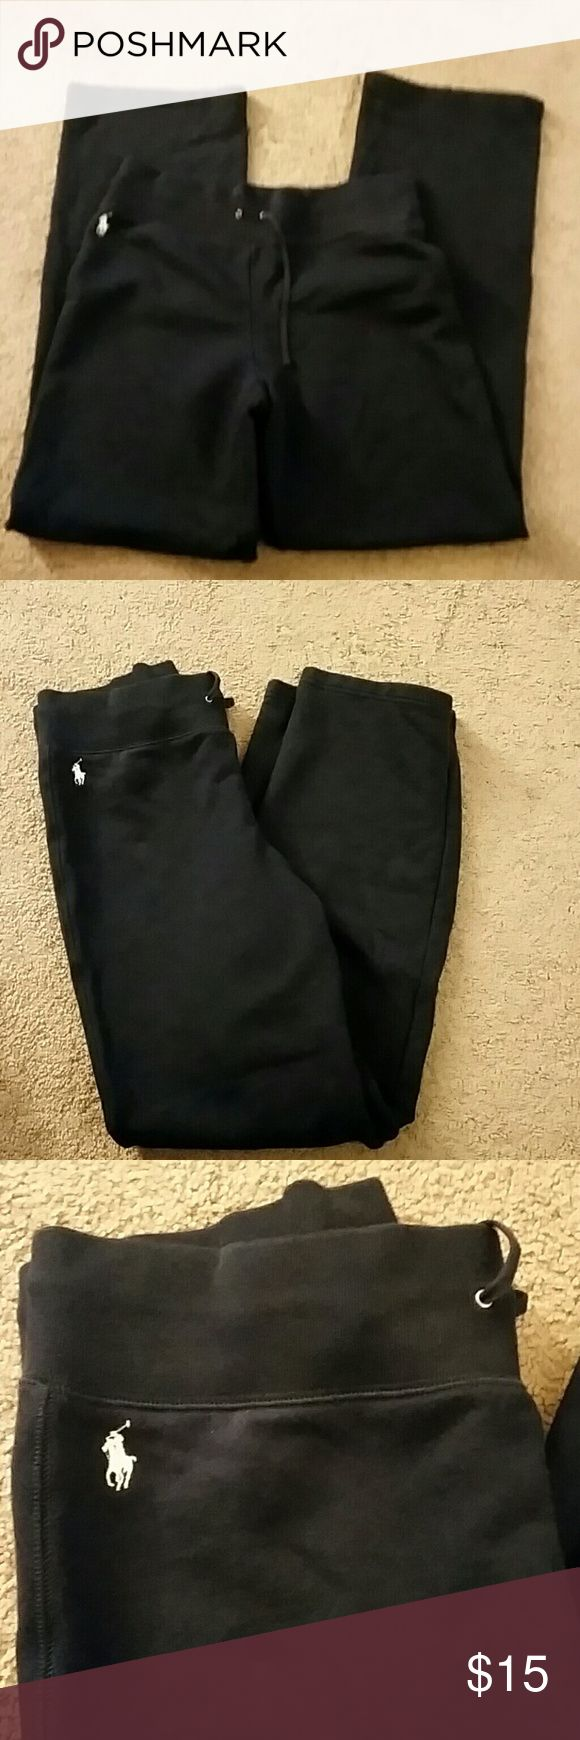 Women's Polo Sweats Stylish Polo sweatpants. In good condition. Navy blue. Polo by Ralph Lauren Pants Track Pants & Joggers